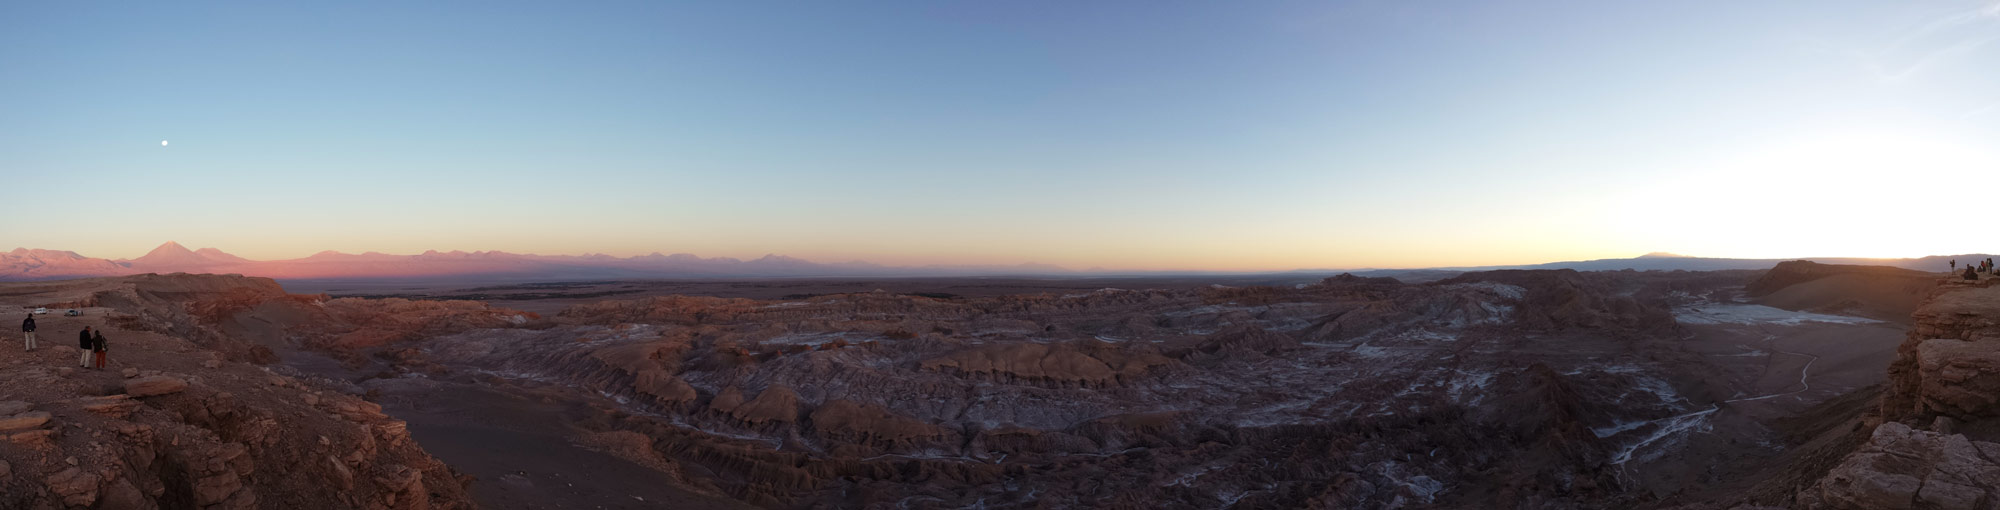 Panorama of sunset at Valle de la Luna